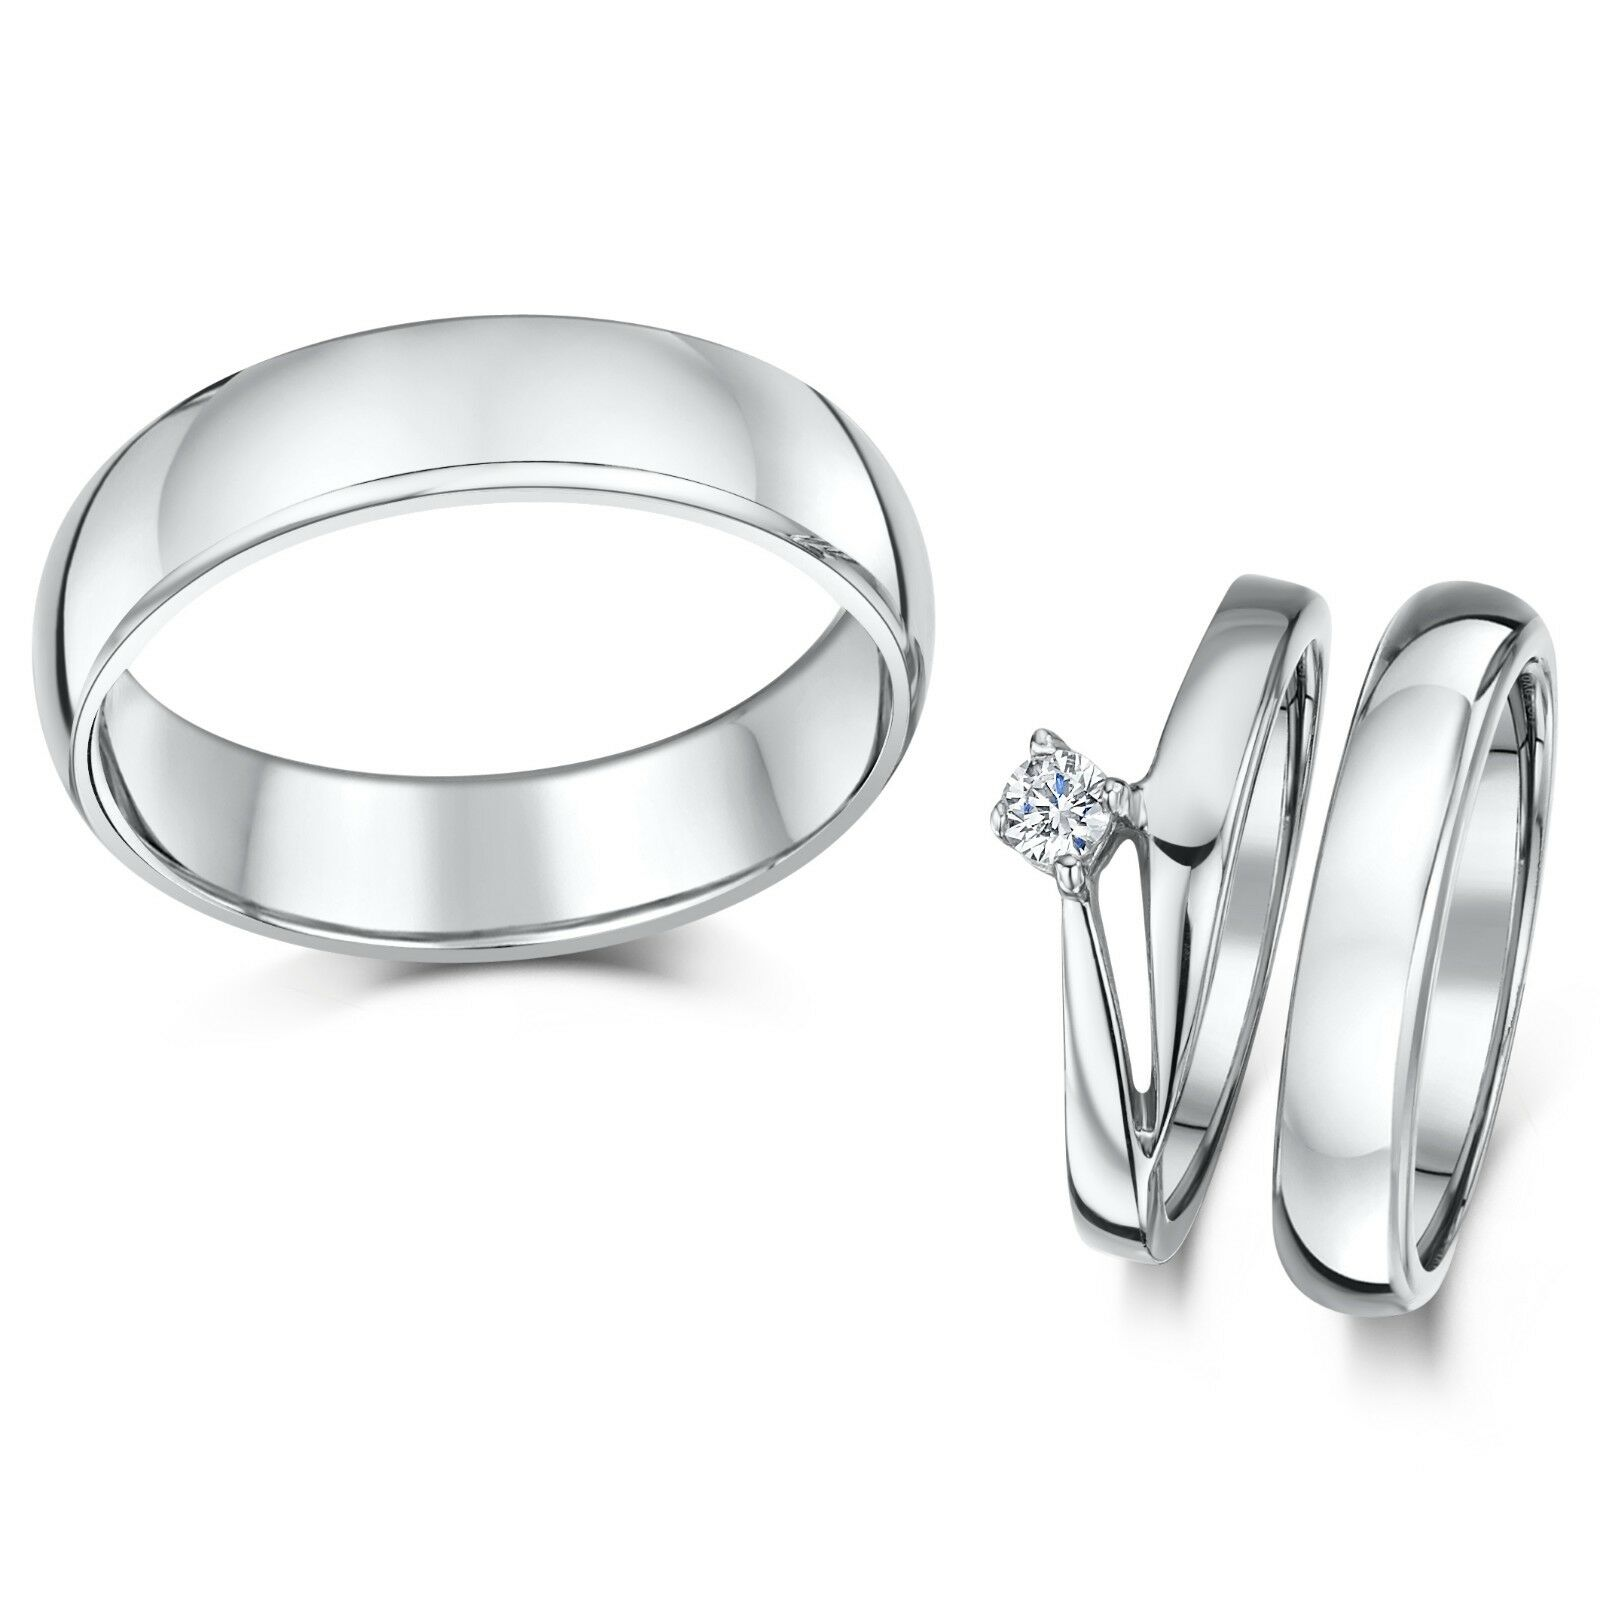 Cobalt Illusion Credver Engagement His & Hers 3&5mm Rings